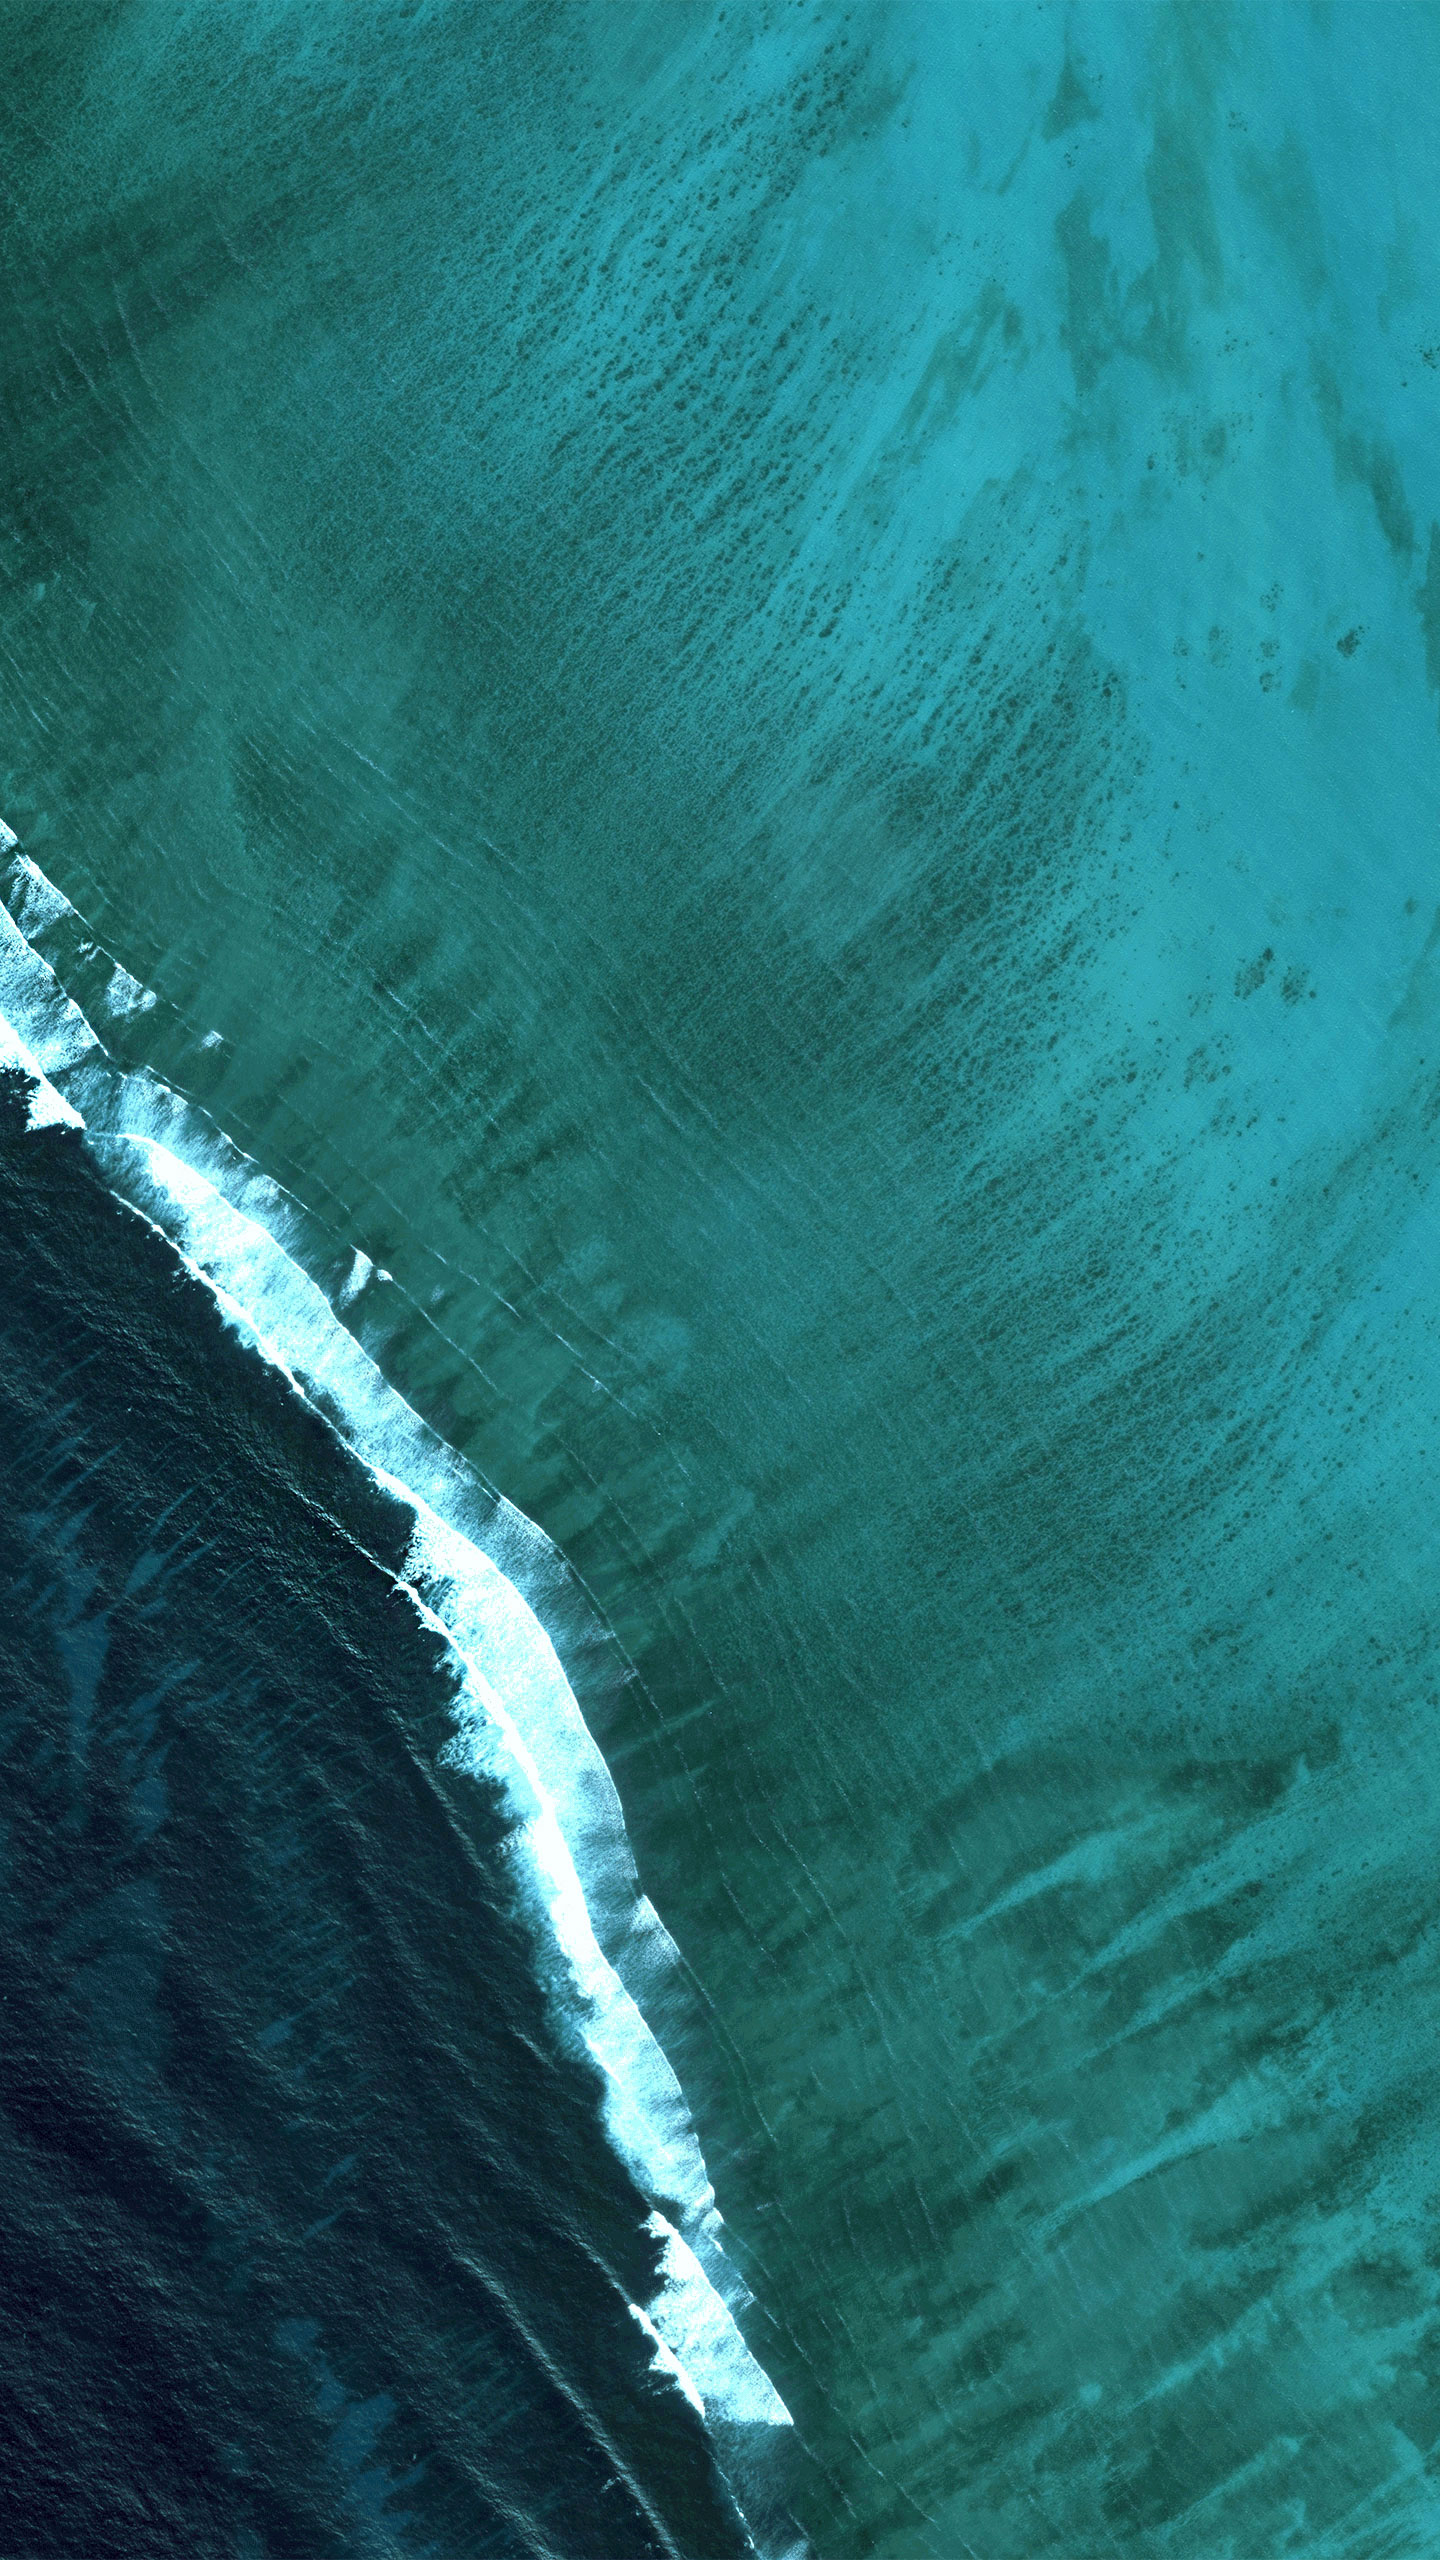 Download 1440x2560 Wallpaper Android Oreo, Android Stock, Sea Waves